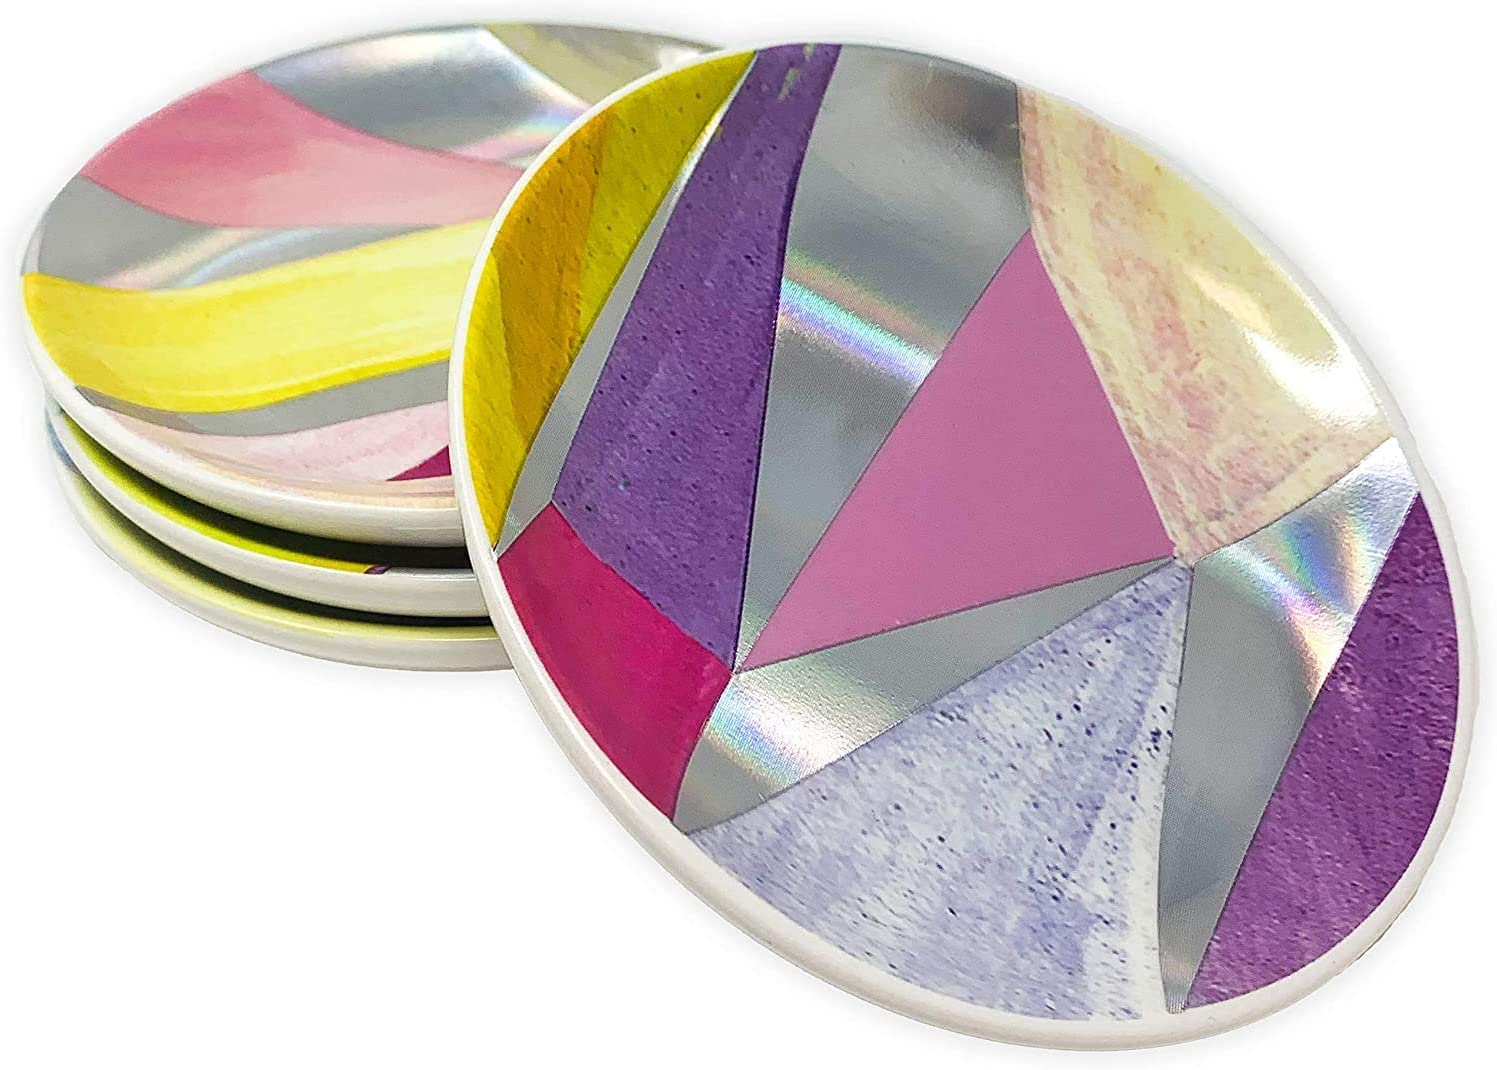 Kendra Scott Ceramic Coaster Set of 4, Cute Round Drink Coasters for Home/Office Tables, Iridescent Facets